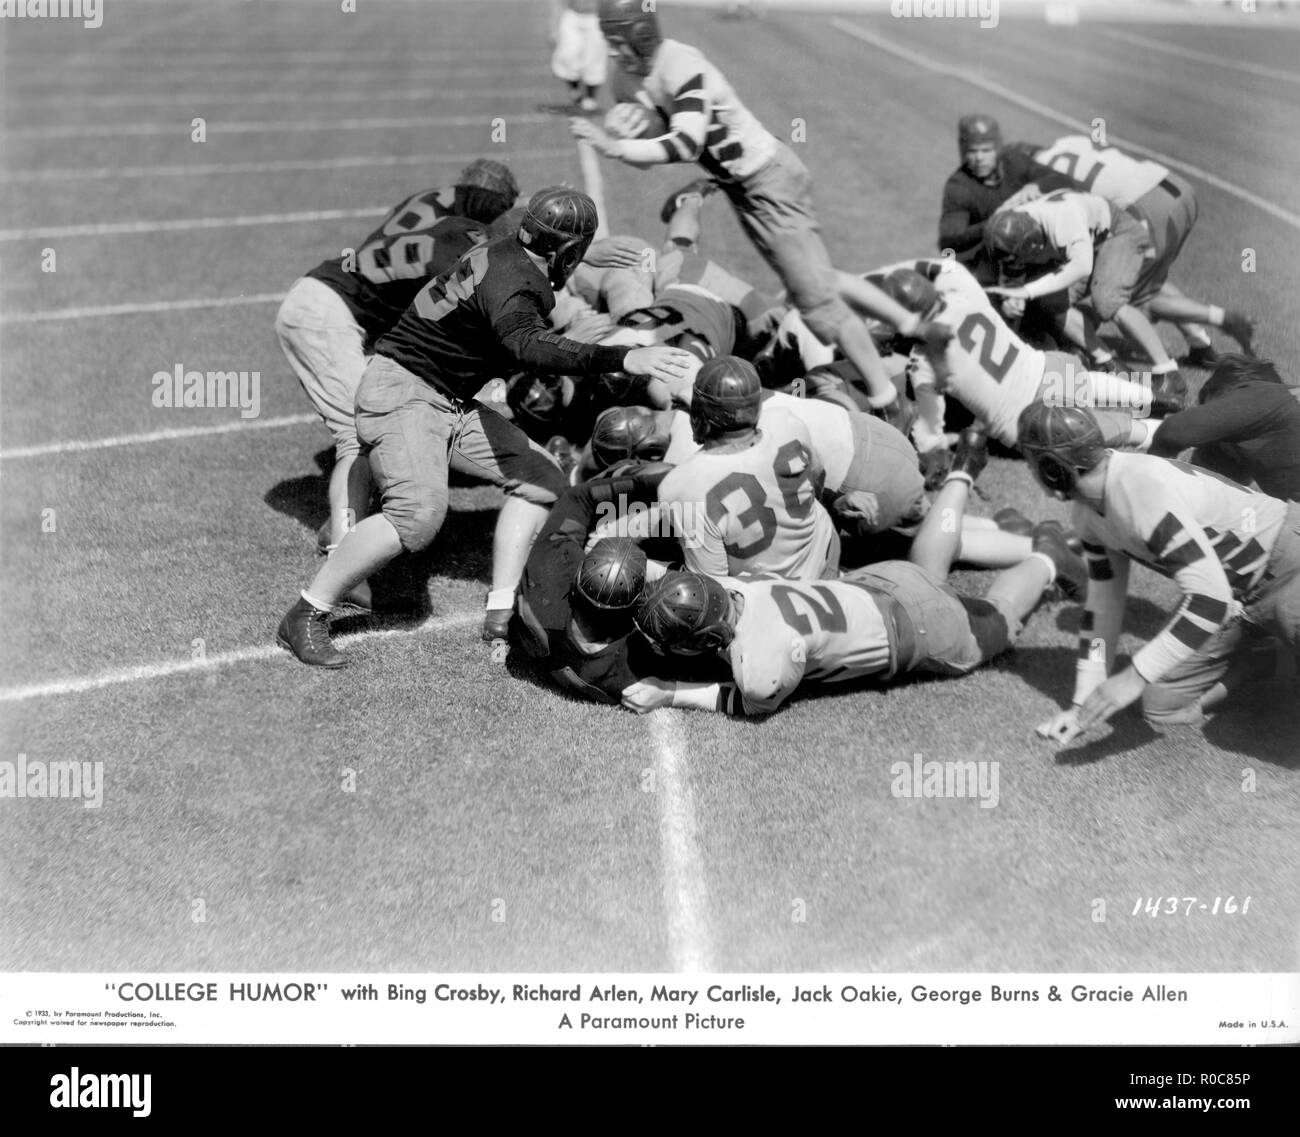 Football Game, on-set of the Film, 'College Humor', Paramount Pictures, 1933 - Stock Image